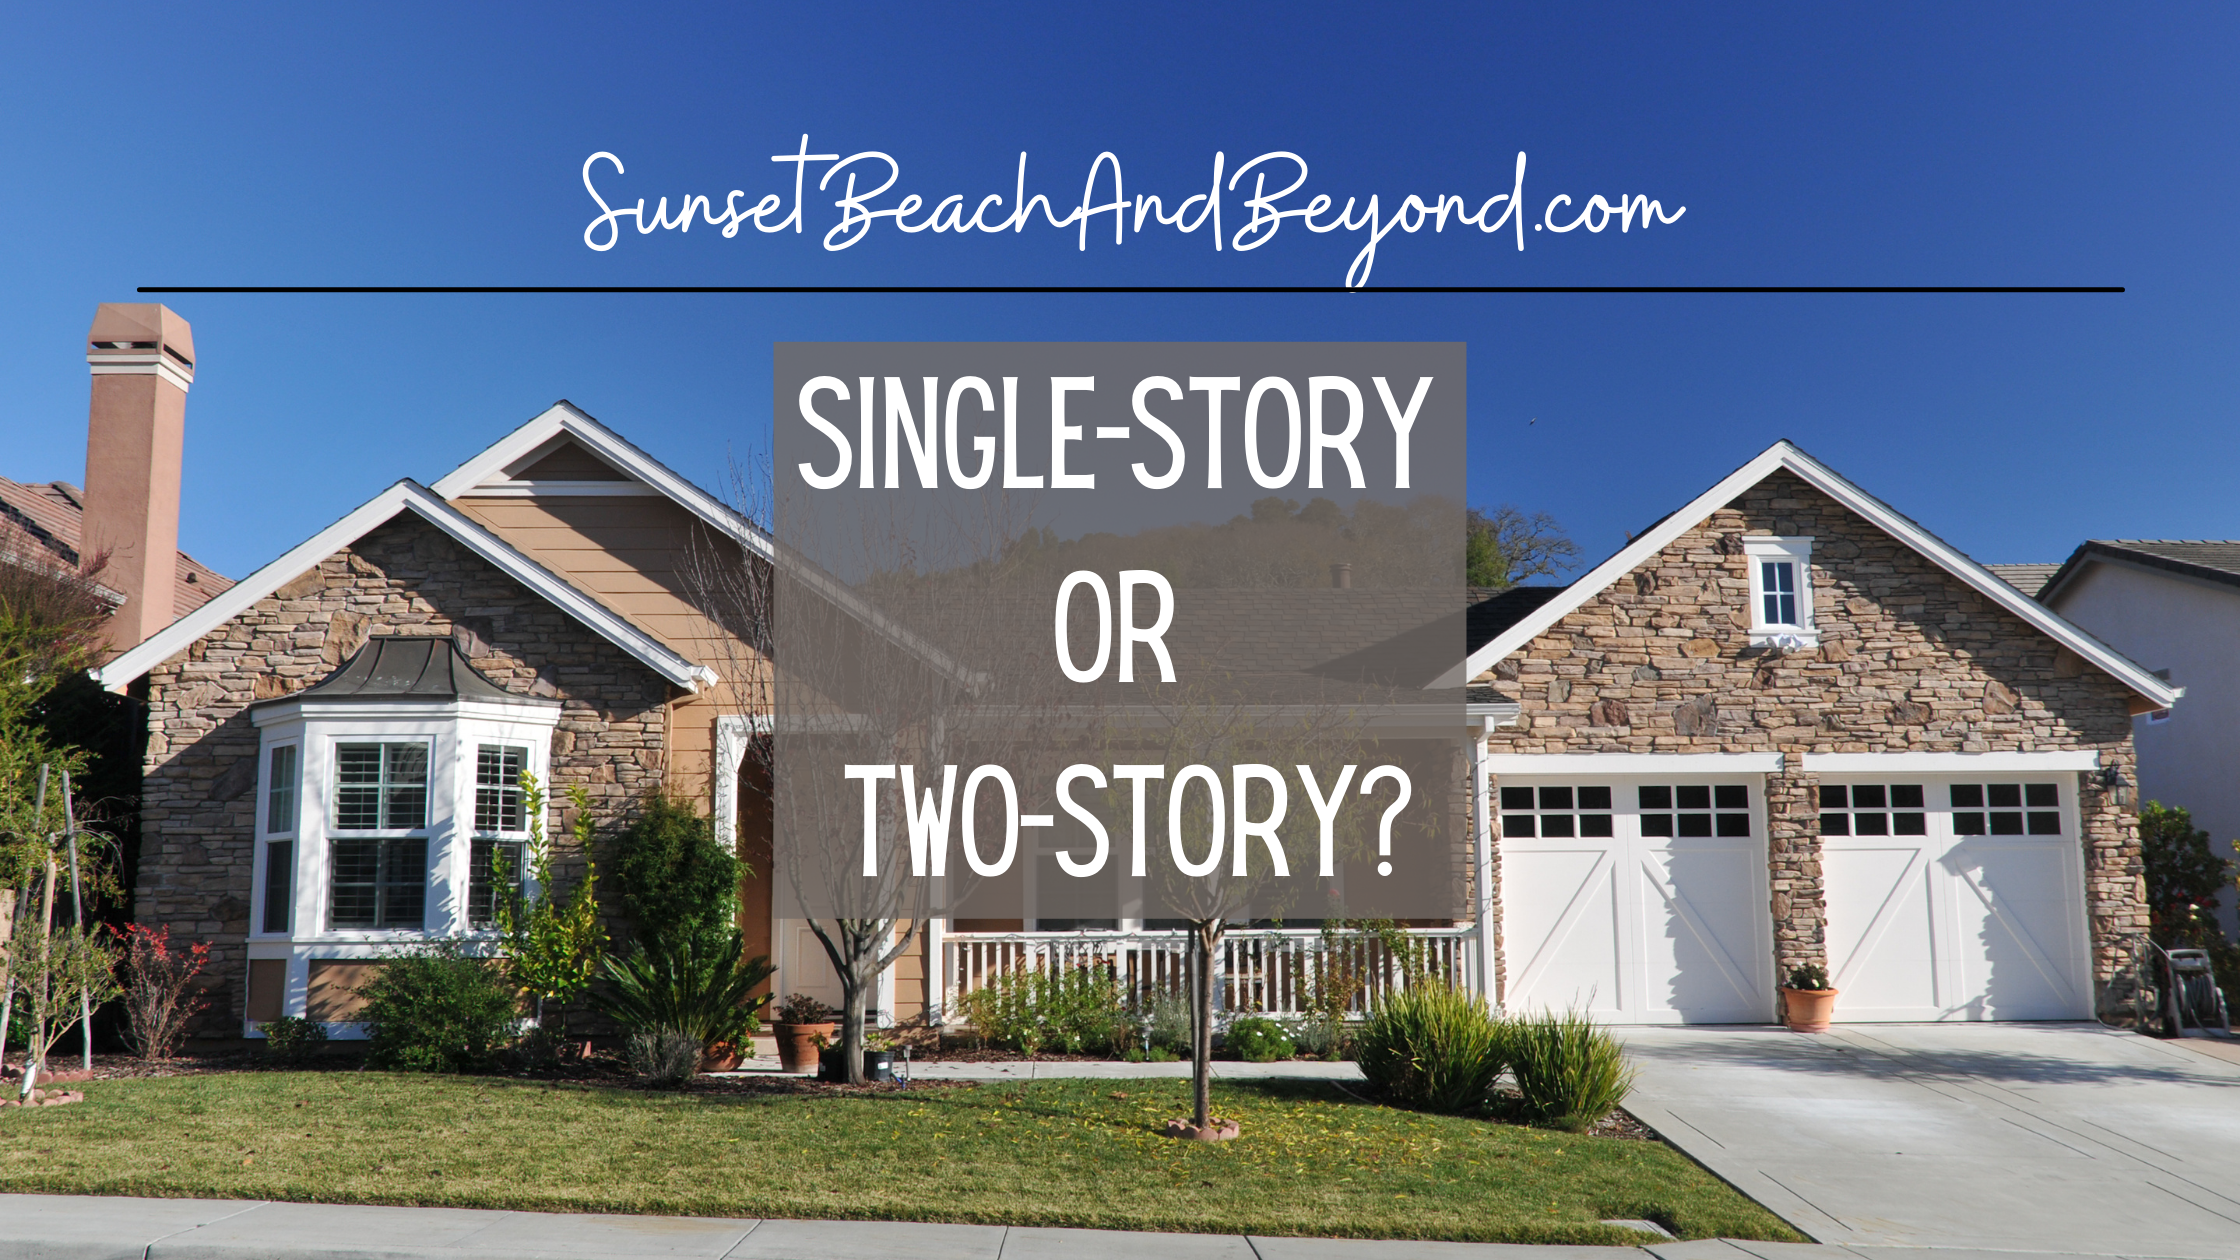 Should I Buy a Single-Story or a Two-Story Home? Part One